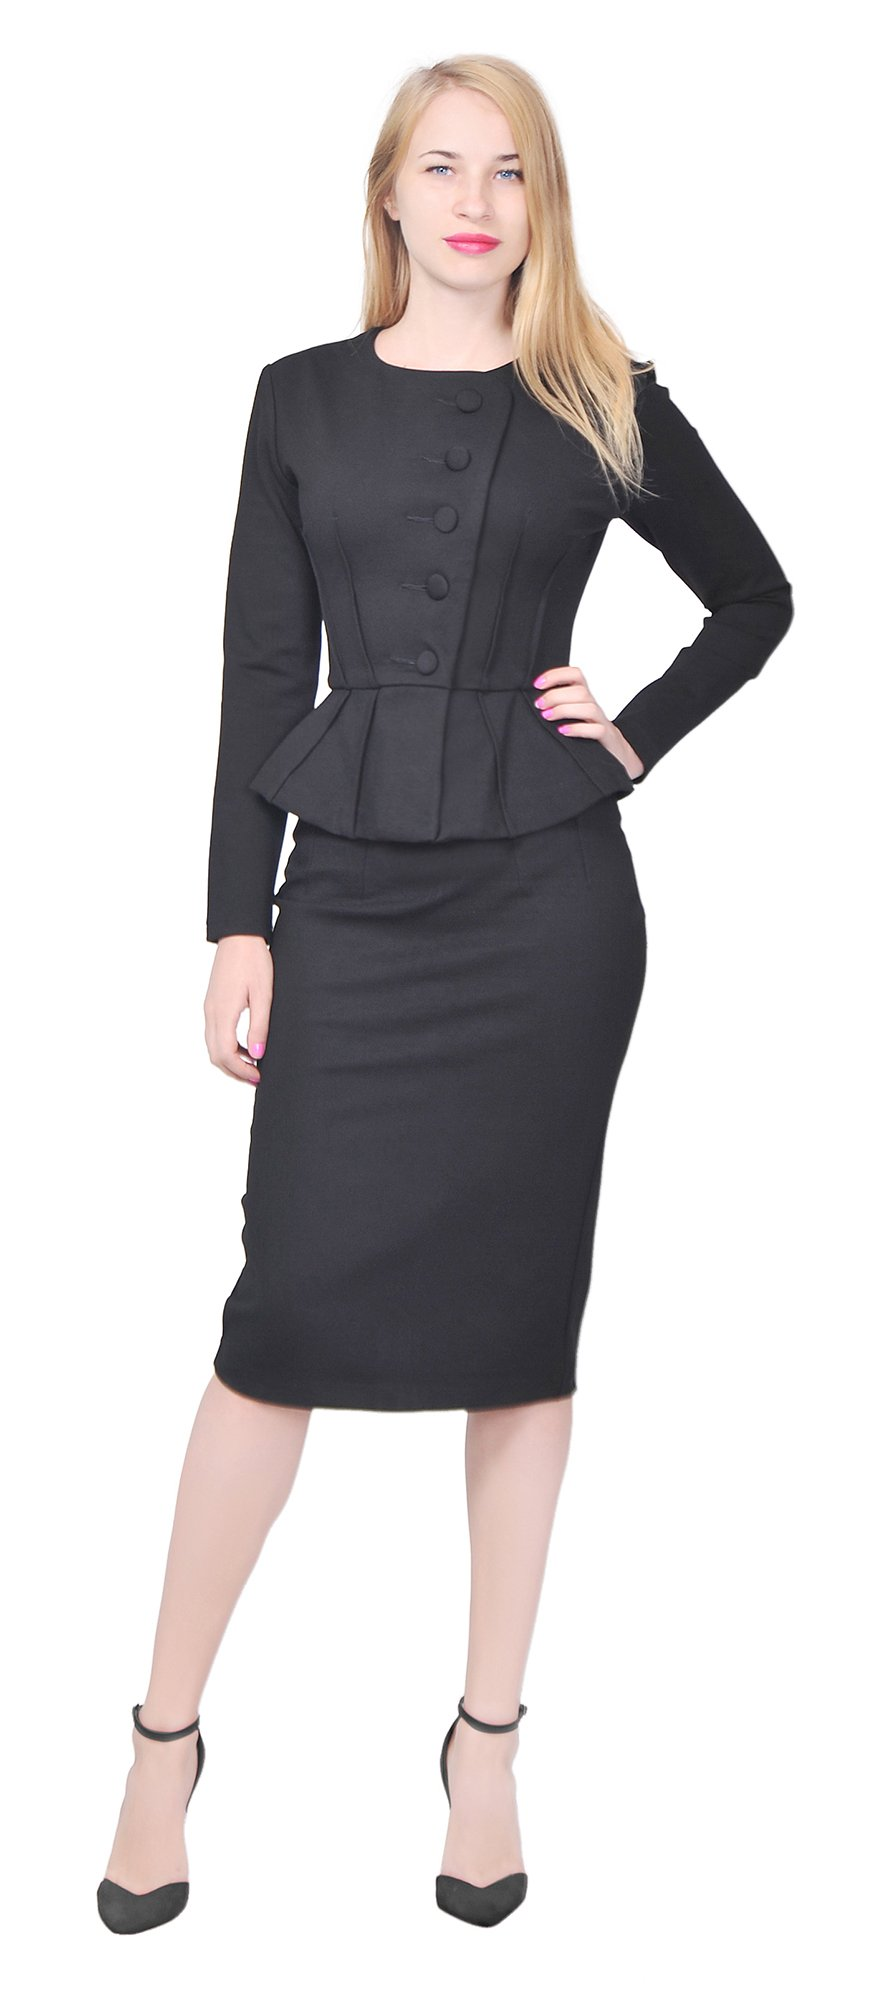 Marycrafts Women's Formal Office Business Shirt Jacket Skirt Suit 6 Black